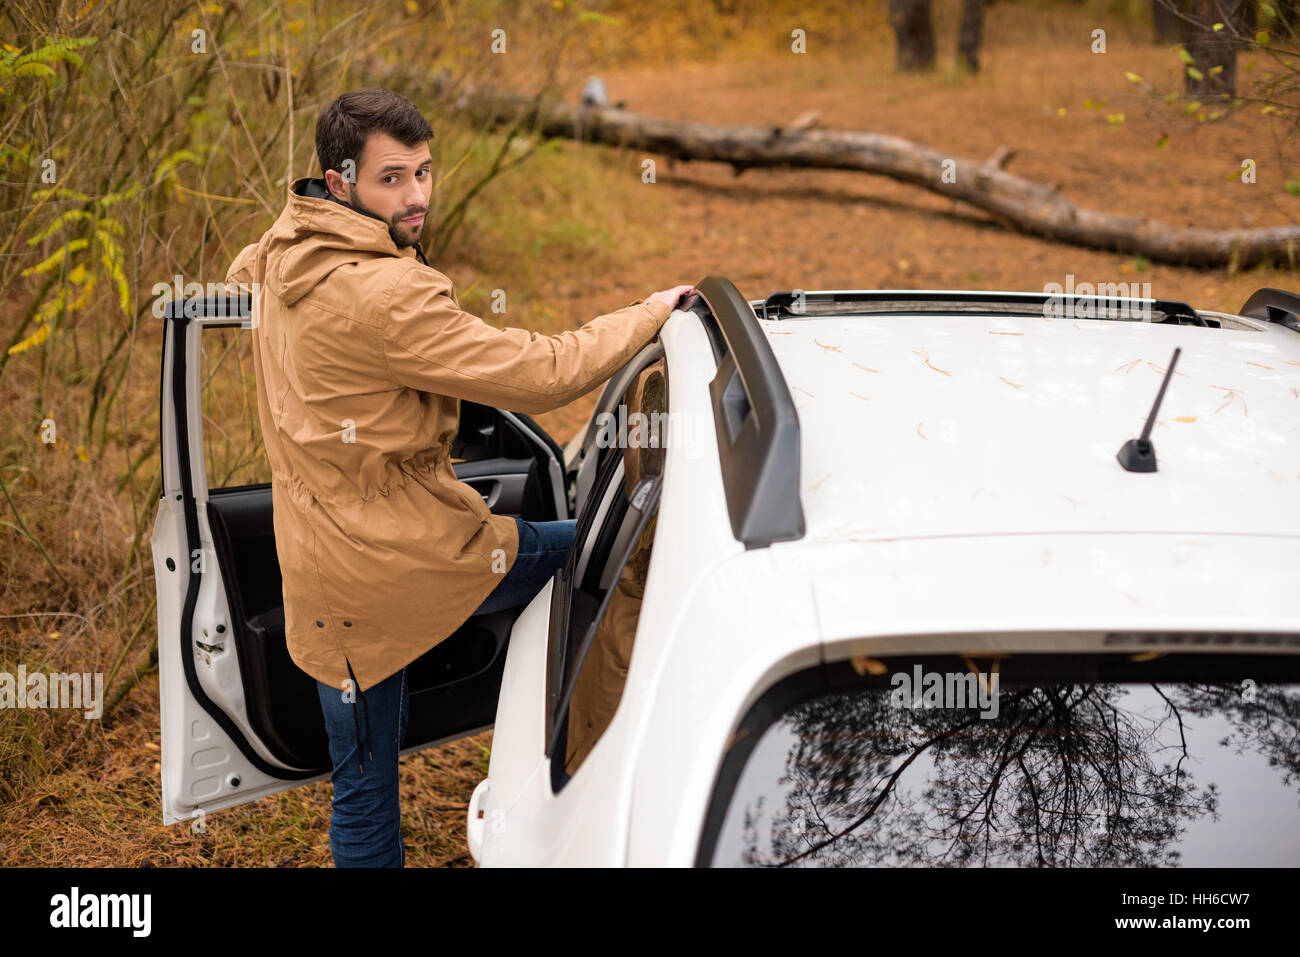 Young man standing near white car and big fallen tree on forest road at autumn day Stock Photo